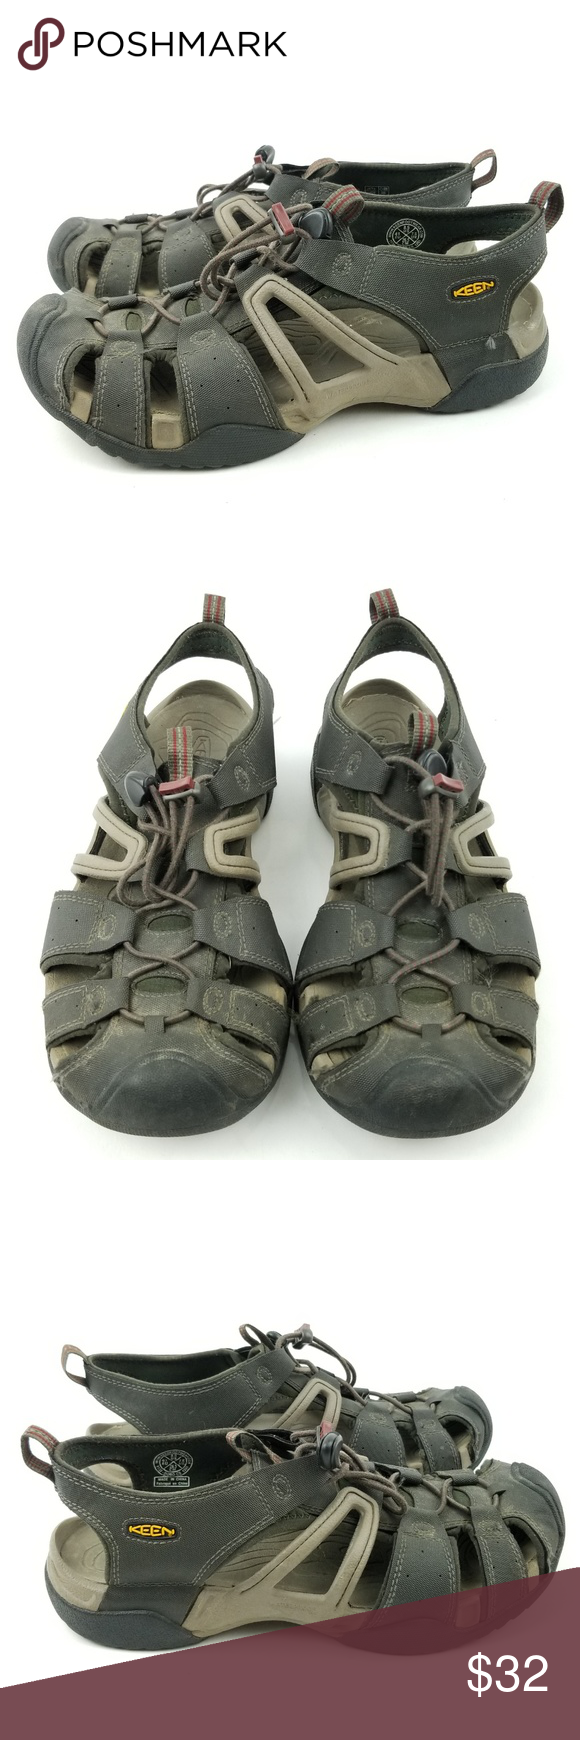 25ae6cecb5c2 Keen Newport H2 Sandals Shoes Men s 8.5 Ei19 Keen Newport H2 Brown  Waterproof Sport Sandals Shoes Men s Size 8.5 Very Good Used Condition